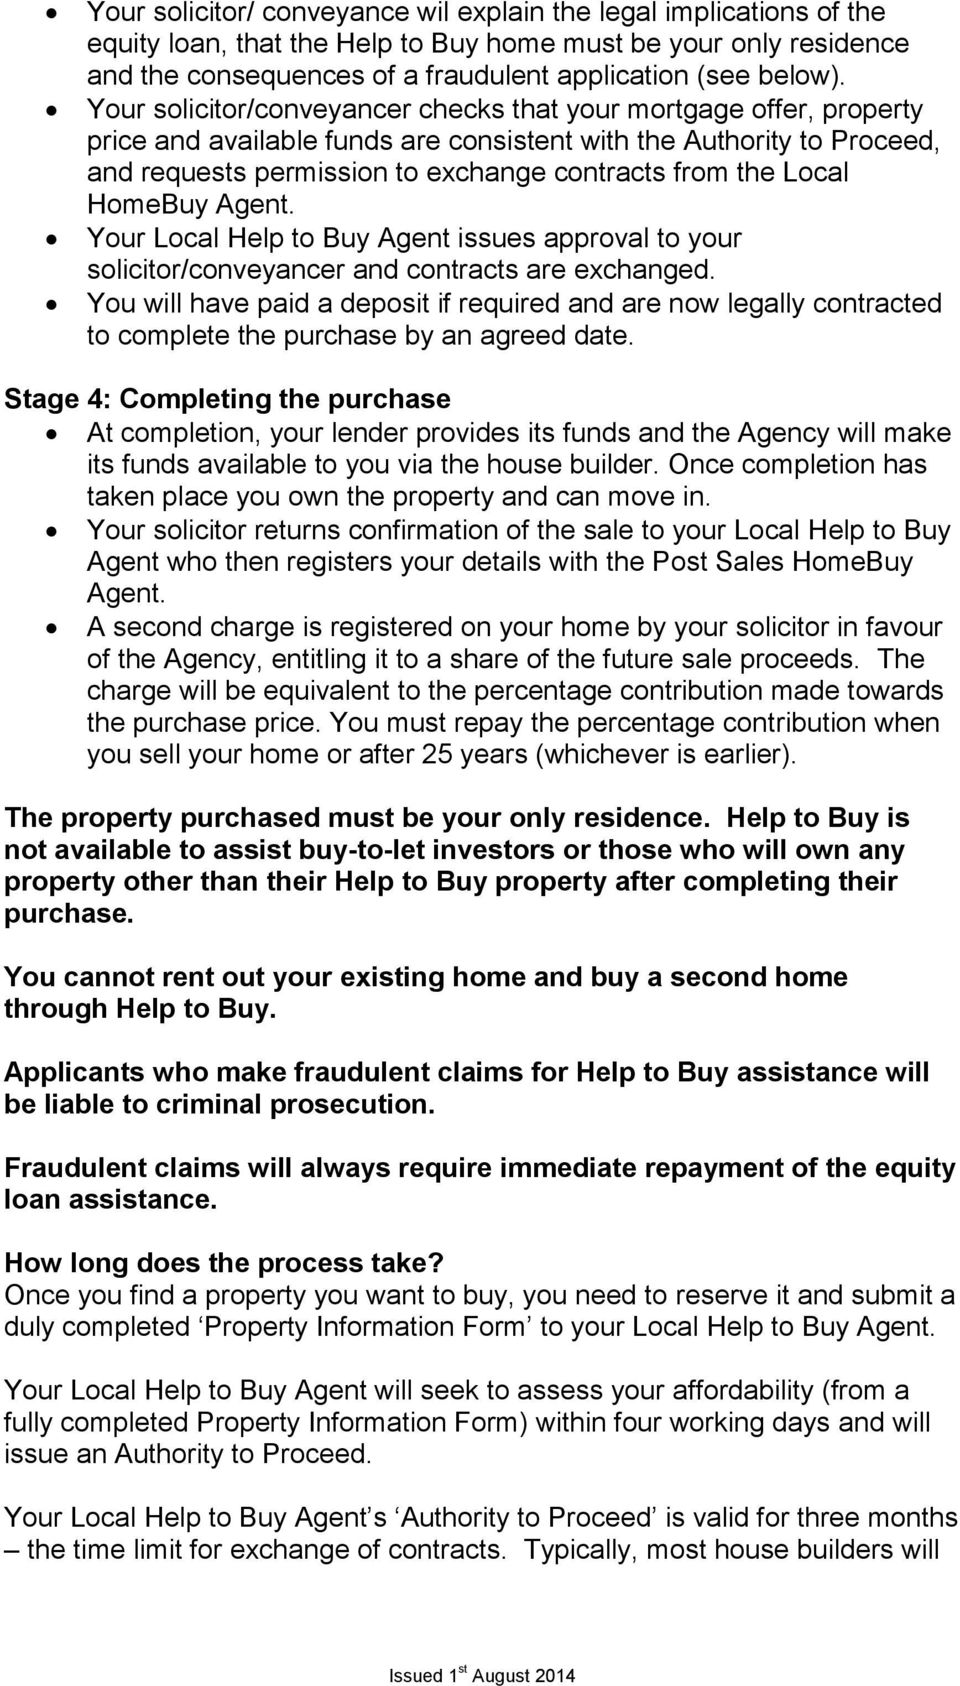 Local HomeBuy Agent. Your Local Help to Buy Agent issues approval to your solicitor/conveyancer and contracts are exchanged.